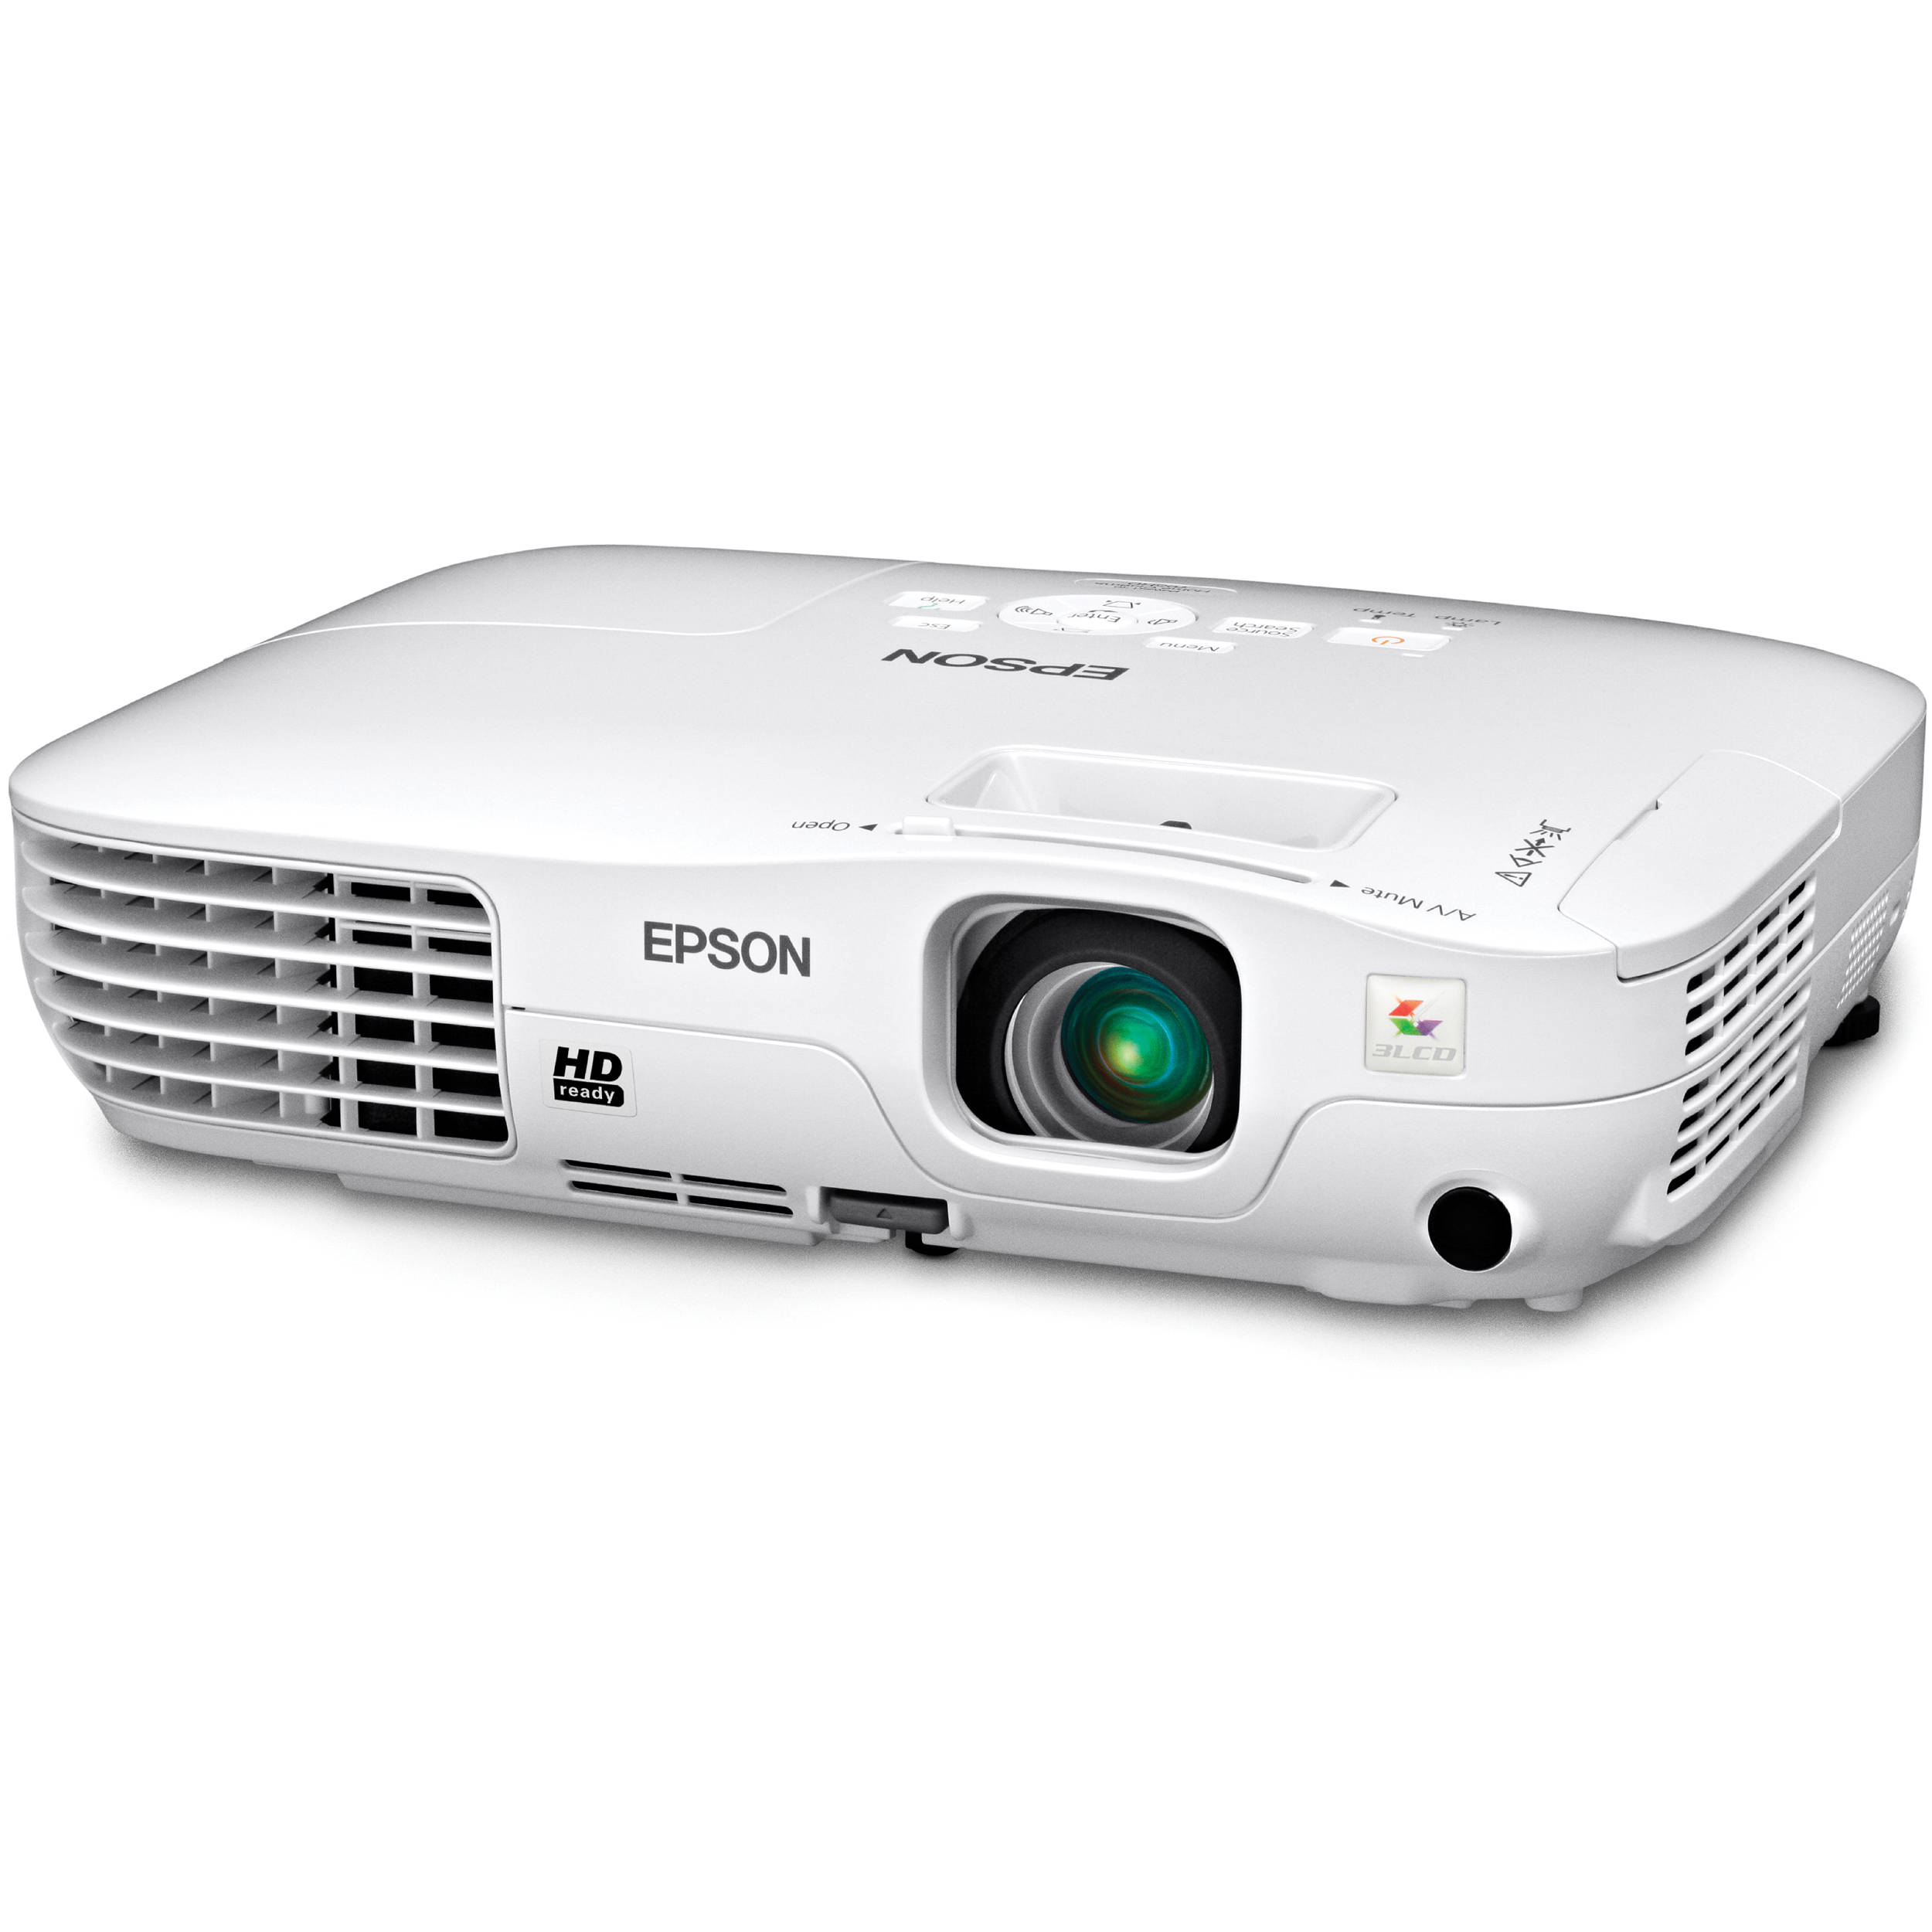 Epson 705HD Powerlite Home Cinema LCD Projector V11H331020 B&H